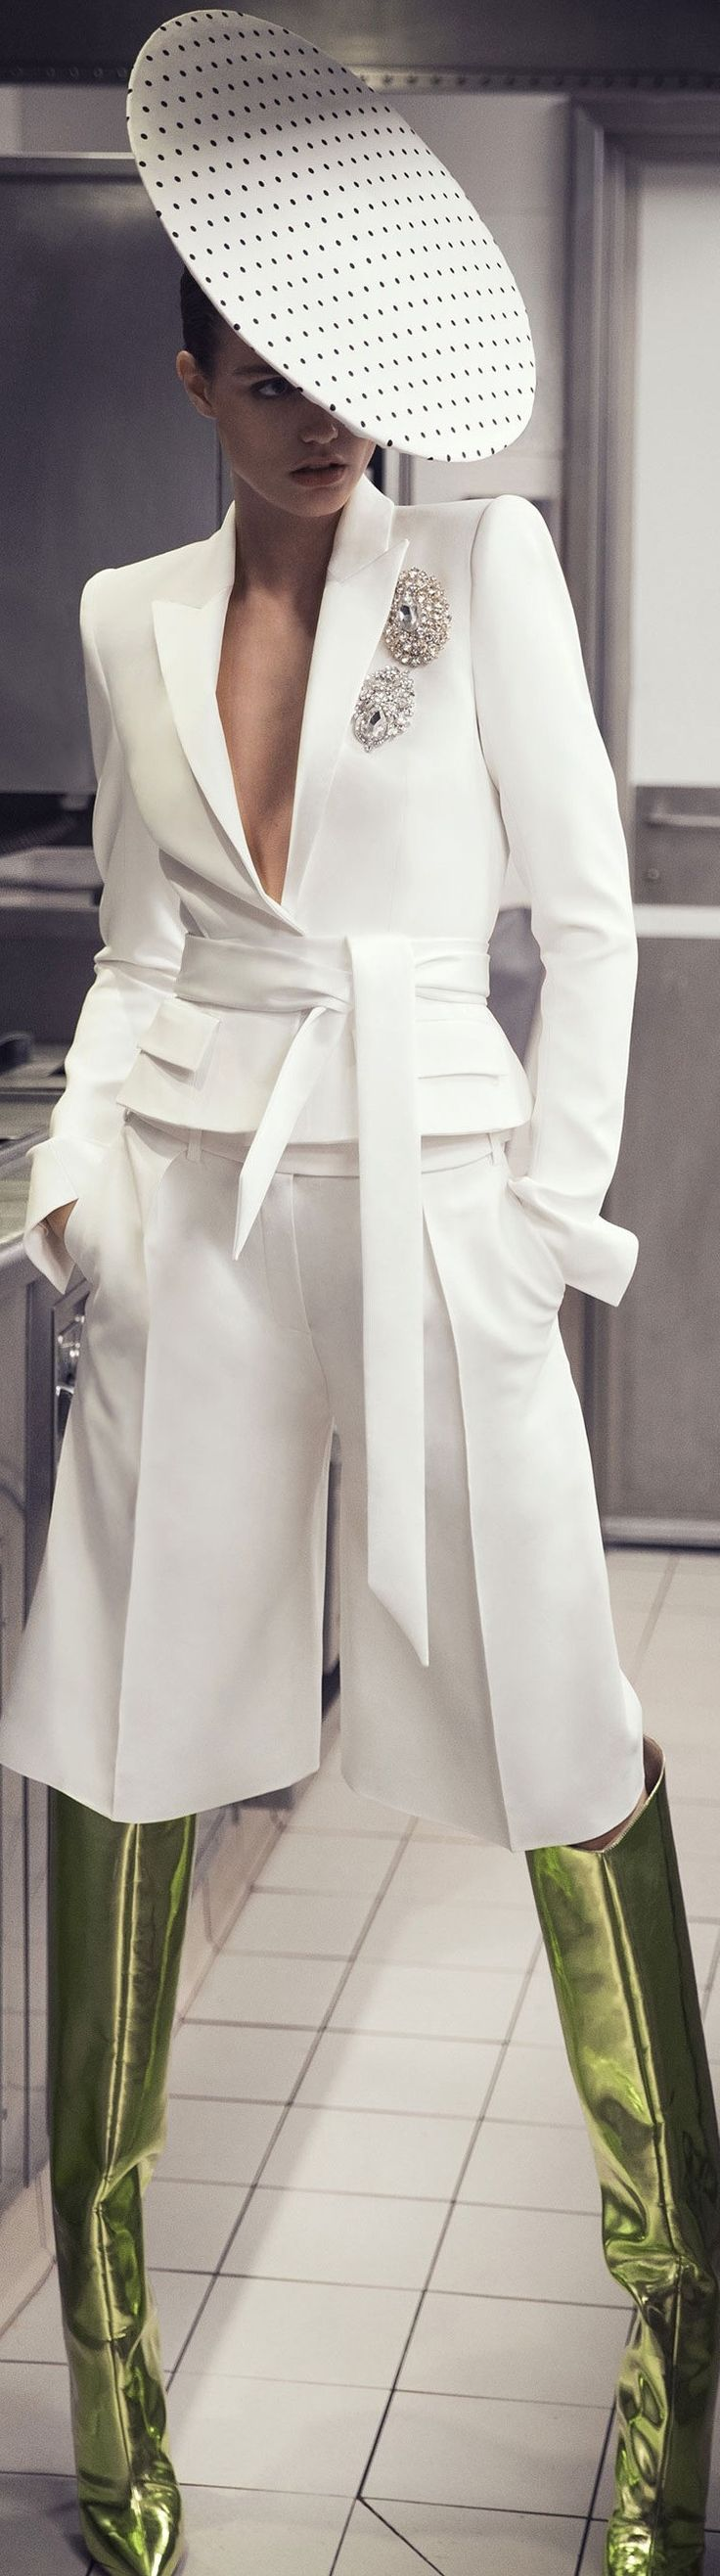 Alexandre Vauthier Spring 2018 WoW!! Pure elegance..! I Love this Beautiful outfit... SLVH ♥♥♥